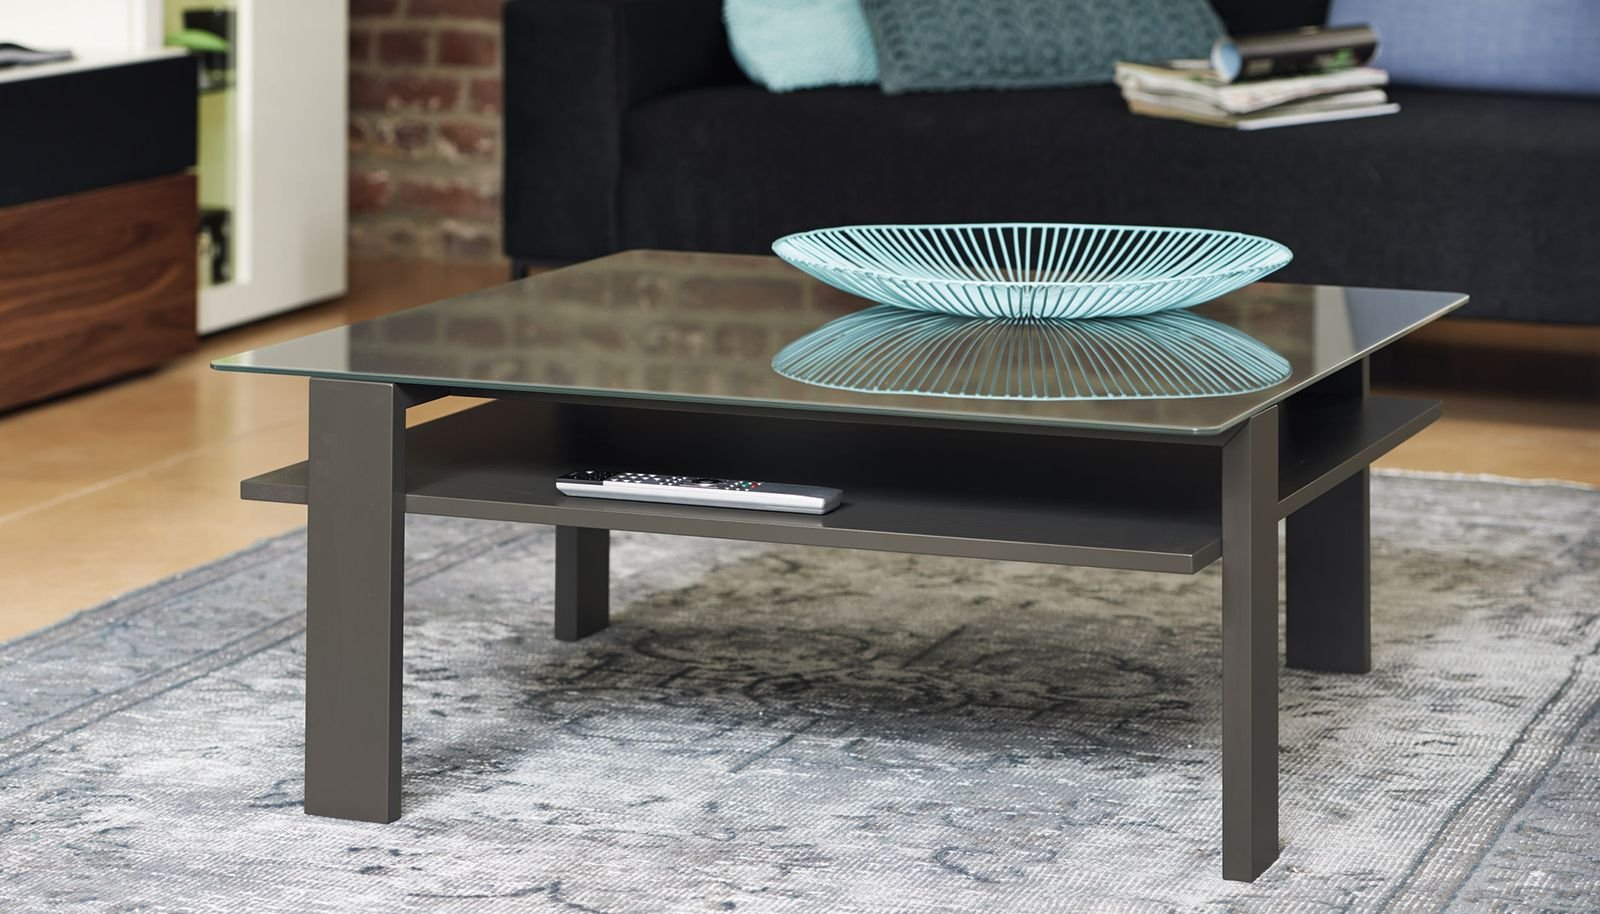 Contemporary Coffee Table Now Vision Ct 19 Now By Hülsta Walnut Lacquered Wood Lacquered Glass